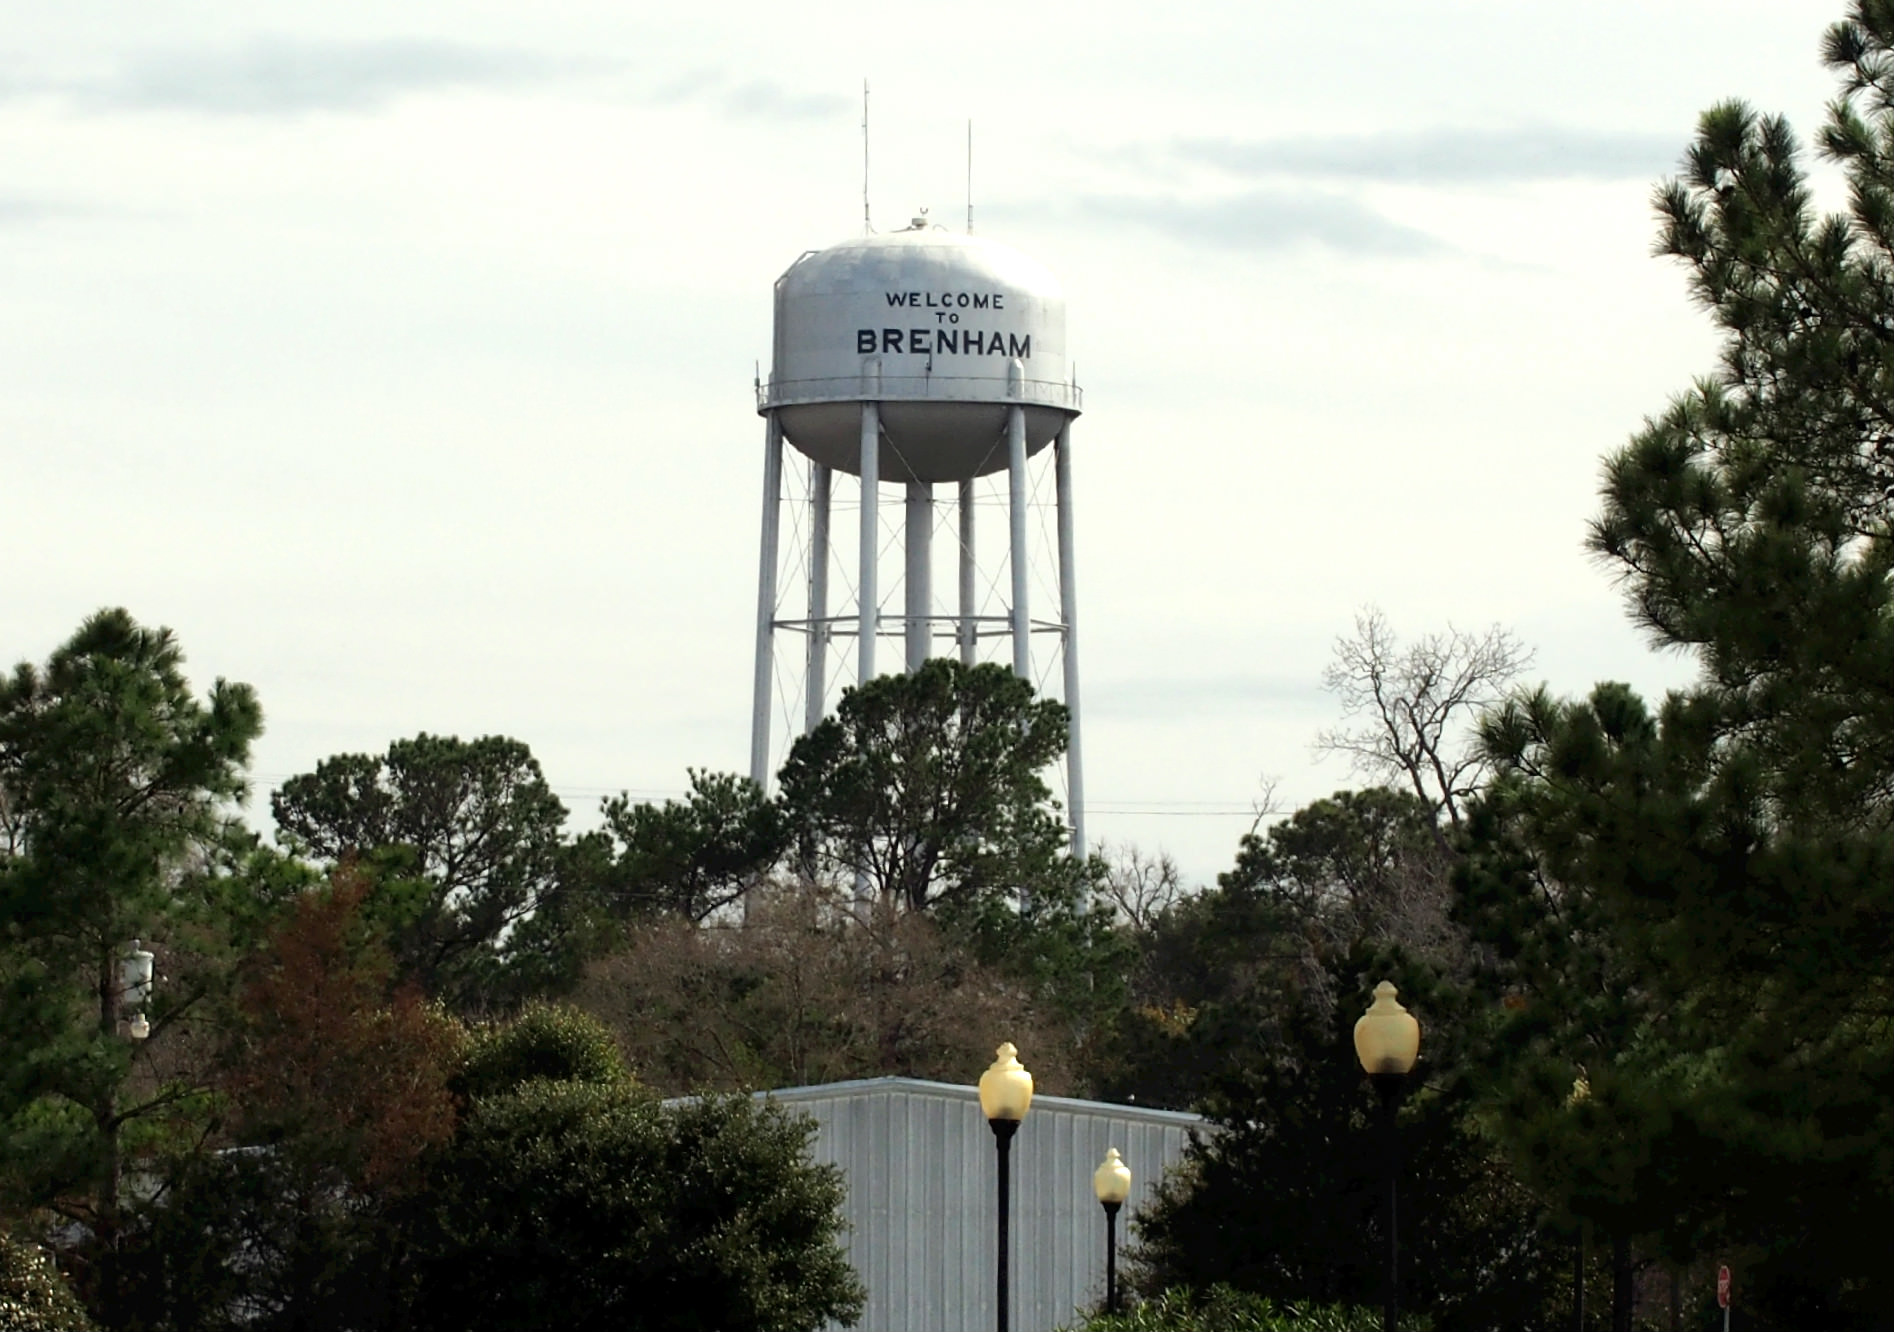 Water tower at Brenham, TX